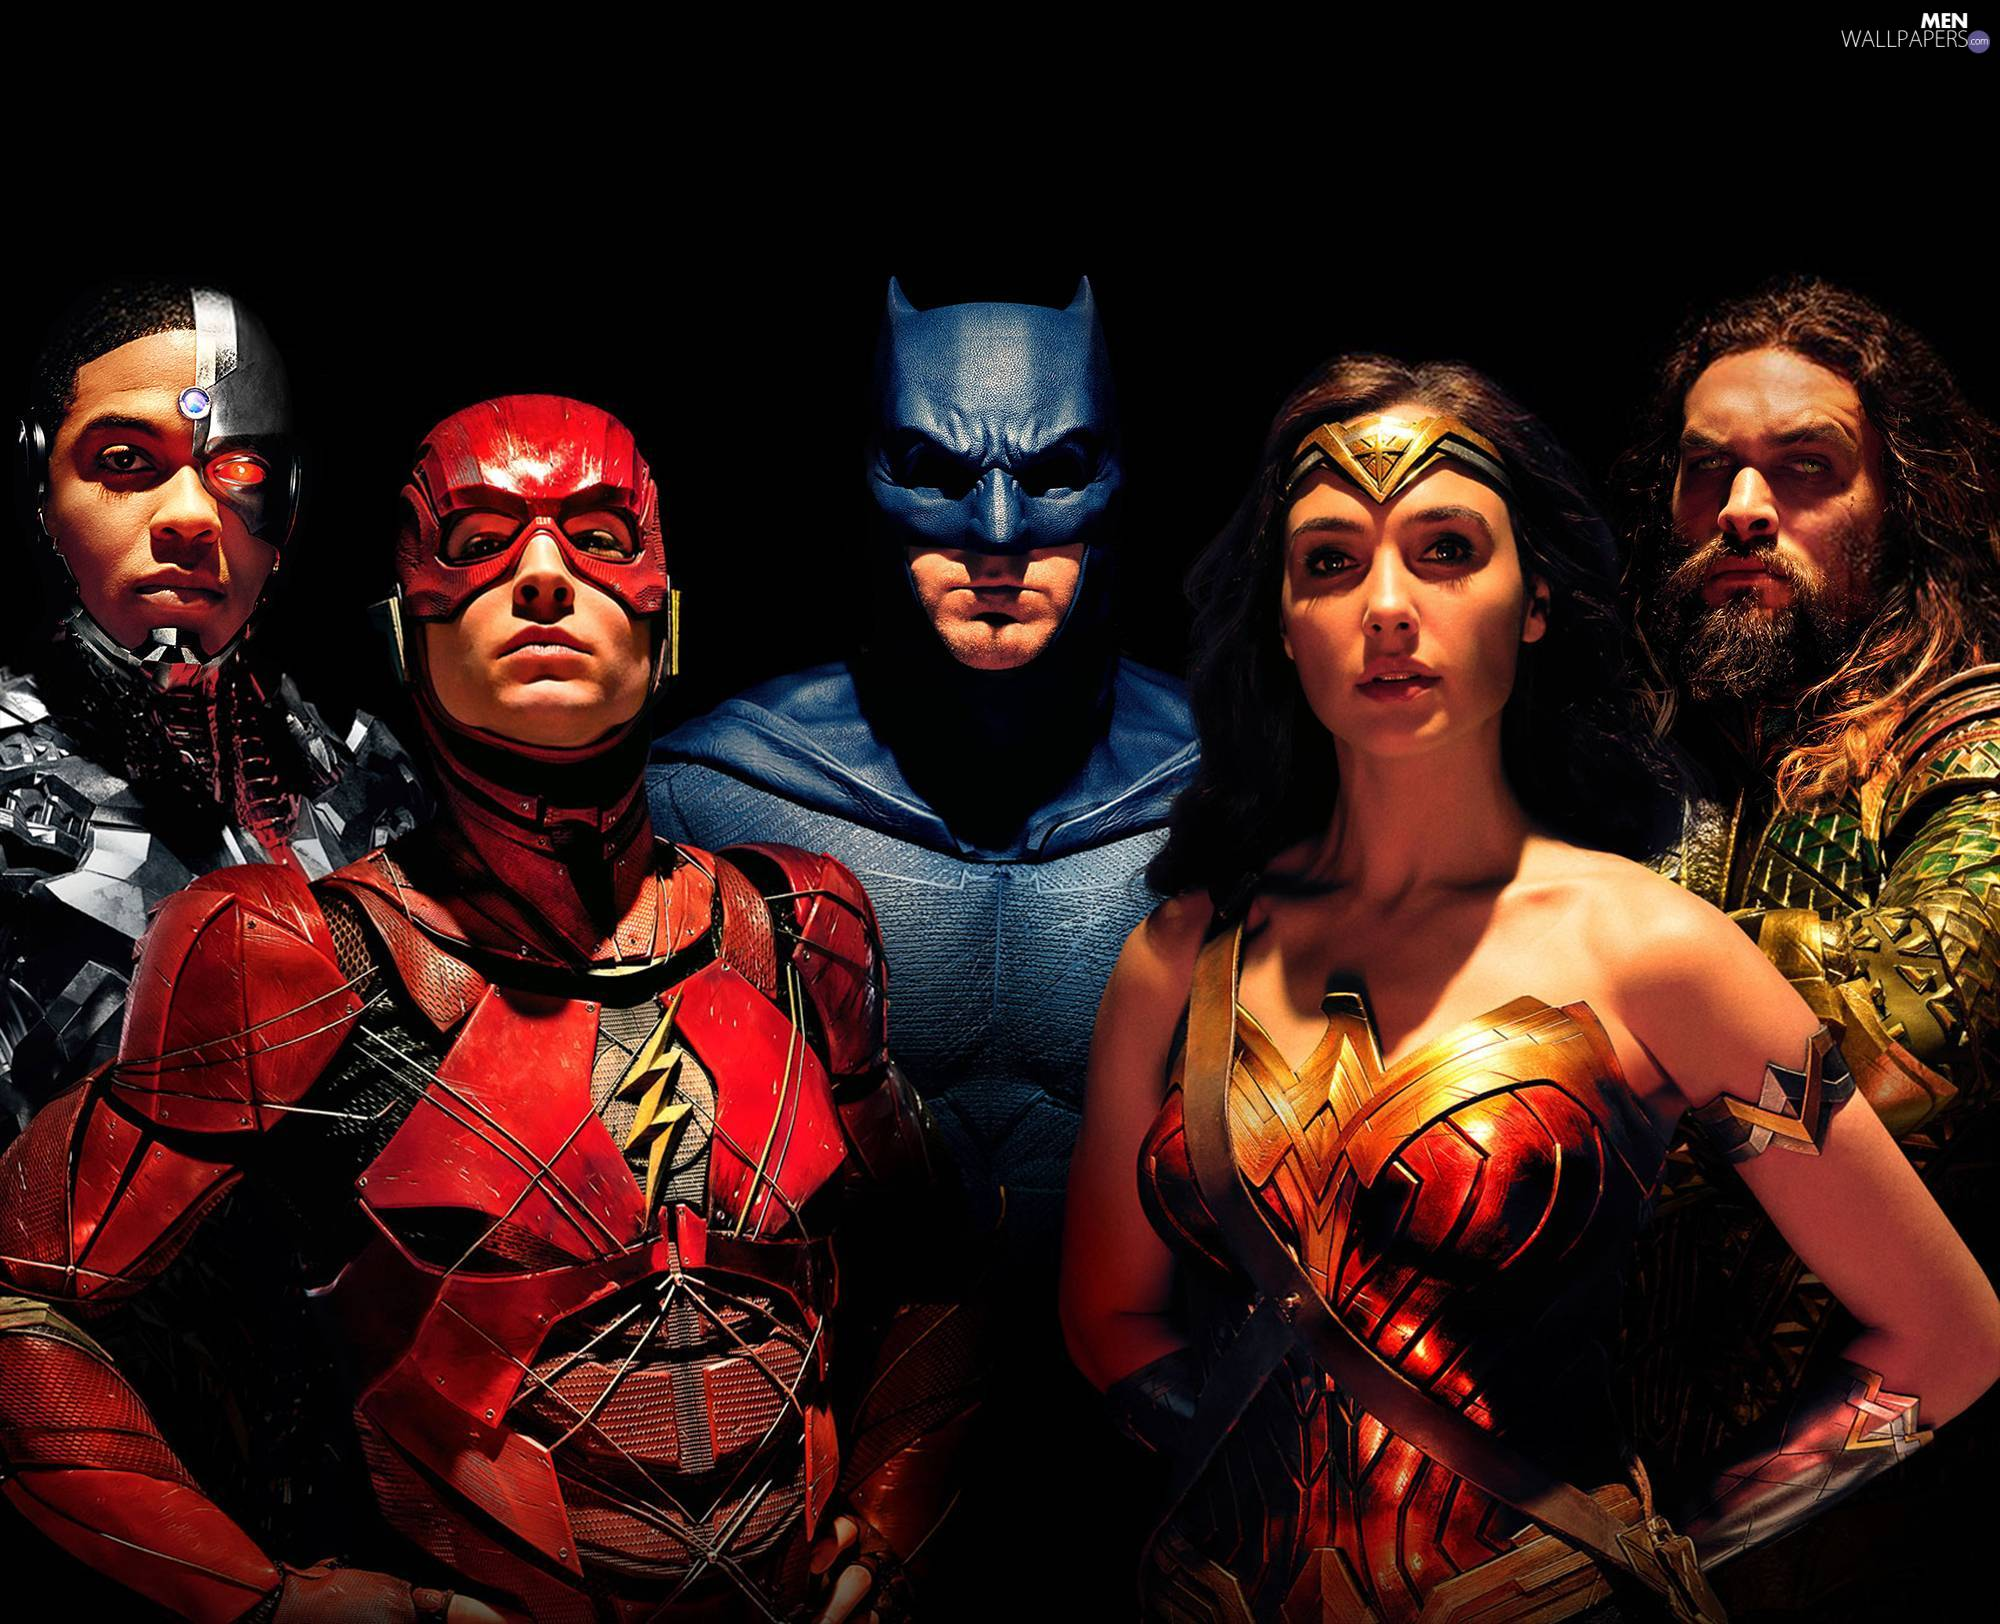 Ben Affleck - Batman, Justice League, Ezra Miller - Flash, Ray Fisher - Cyborg, movie, Jason Momoa - Aquaman, Gal Gadot - Wonder Woman